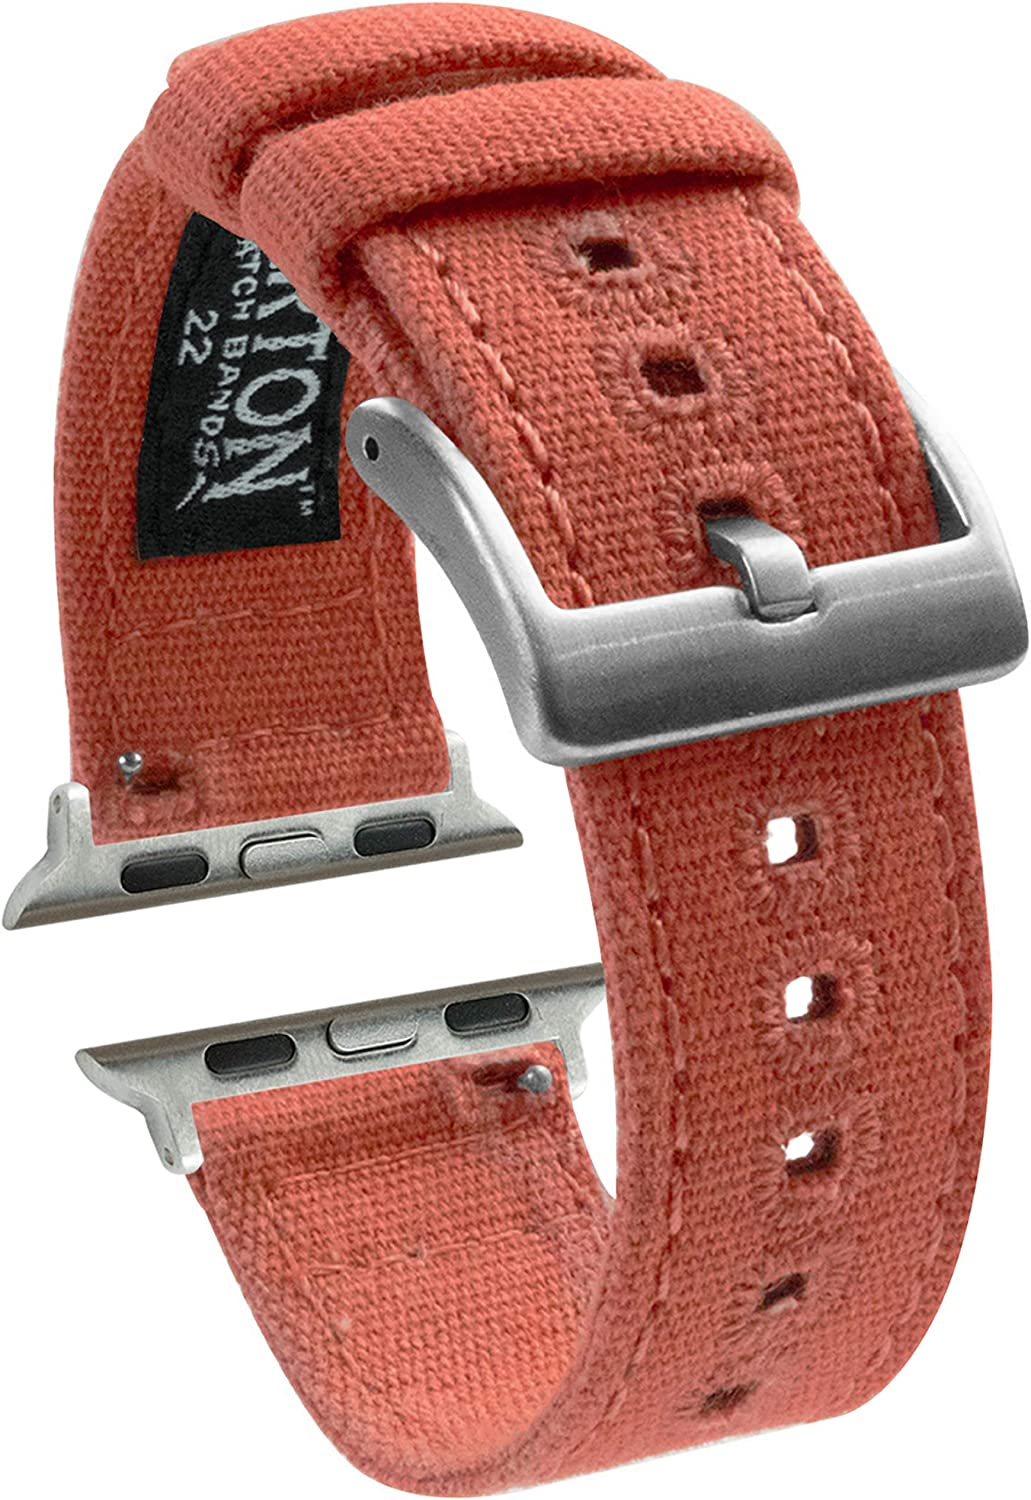 Barton Canvas Watch Bands - Stainless Steel Hardware - Quick Release - Choose Color - Compatible with All Apple Watches Series 1, 2, 3, 4, & 5-38mm/40mm & 42mm/44mm